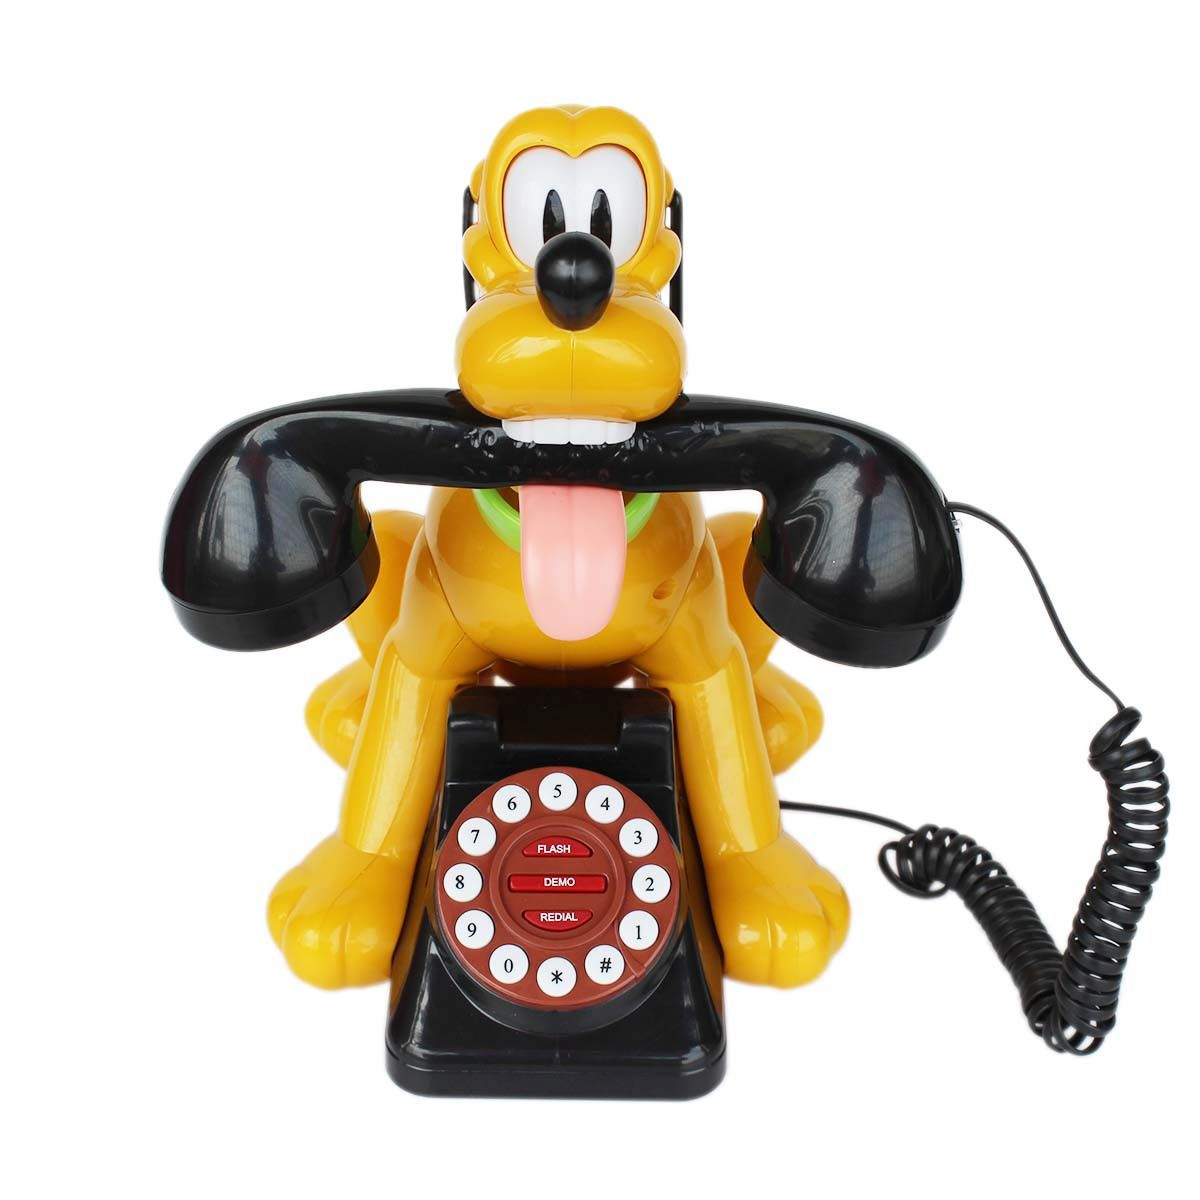 medium resolution of animal dog shaped wired telephone landline phone 1m212 yellow landlinephone cartoontelephone homedecor fancyphones telephone